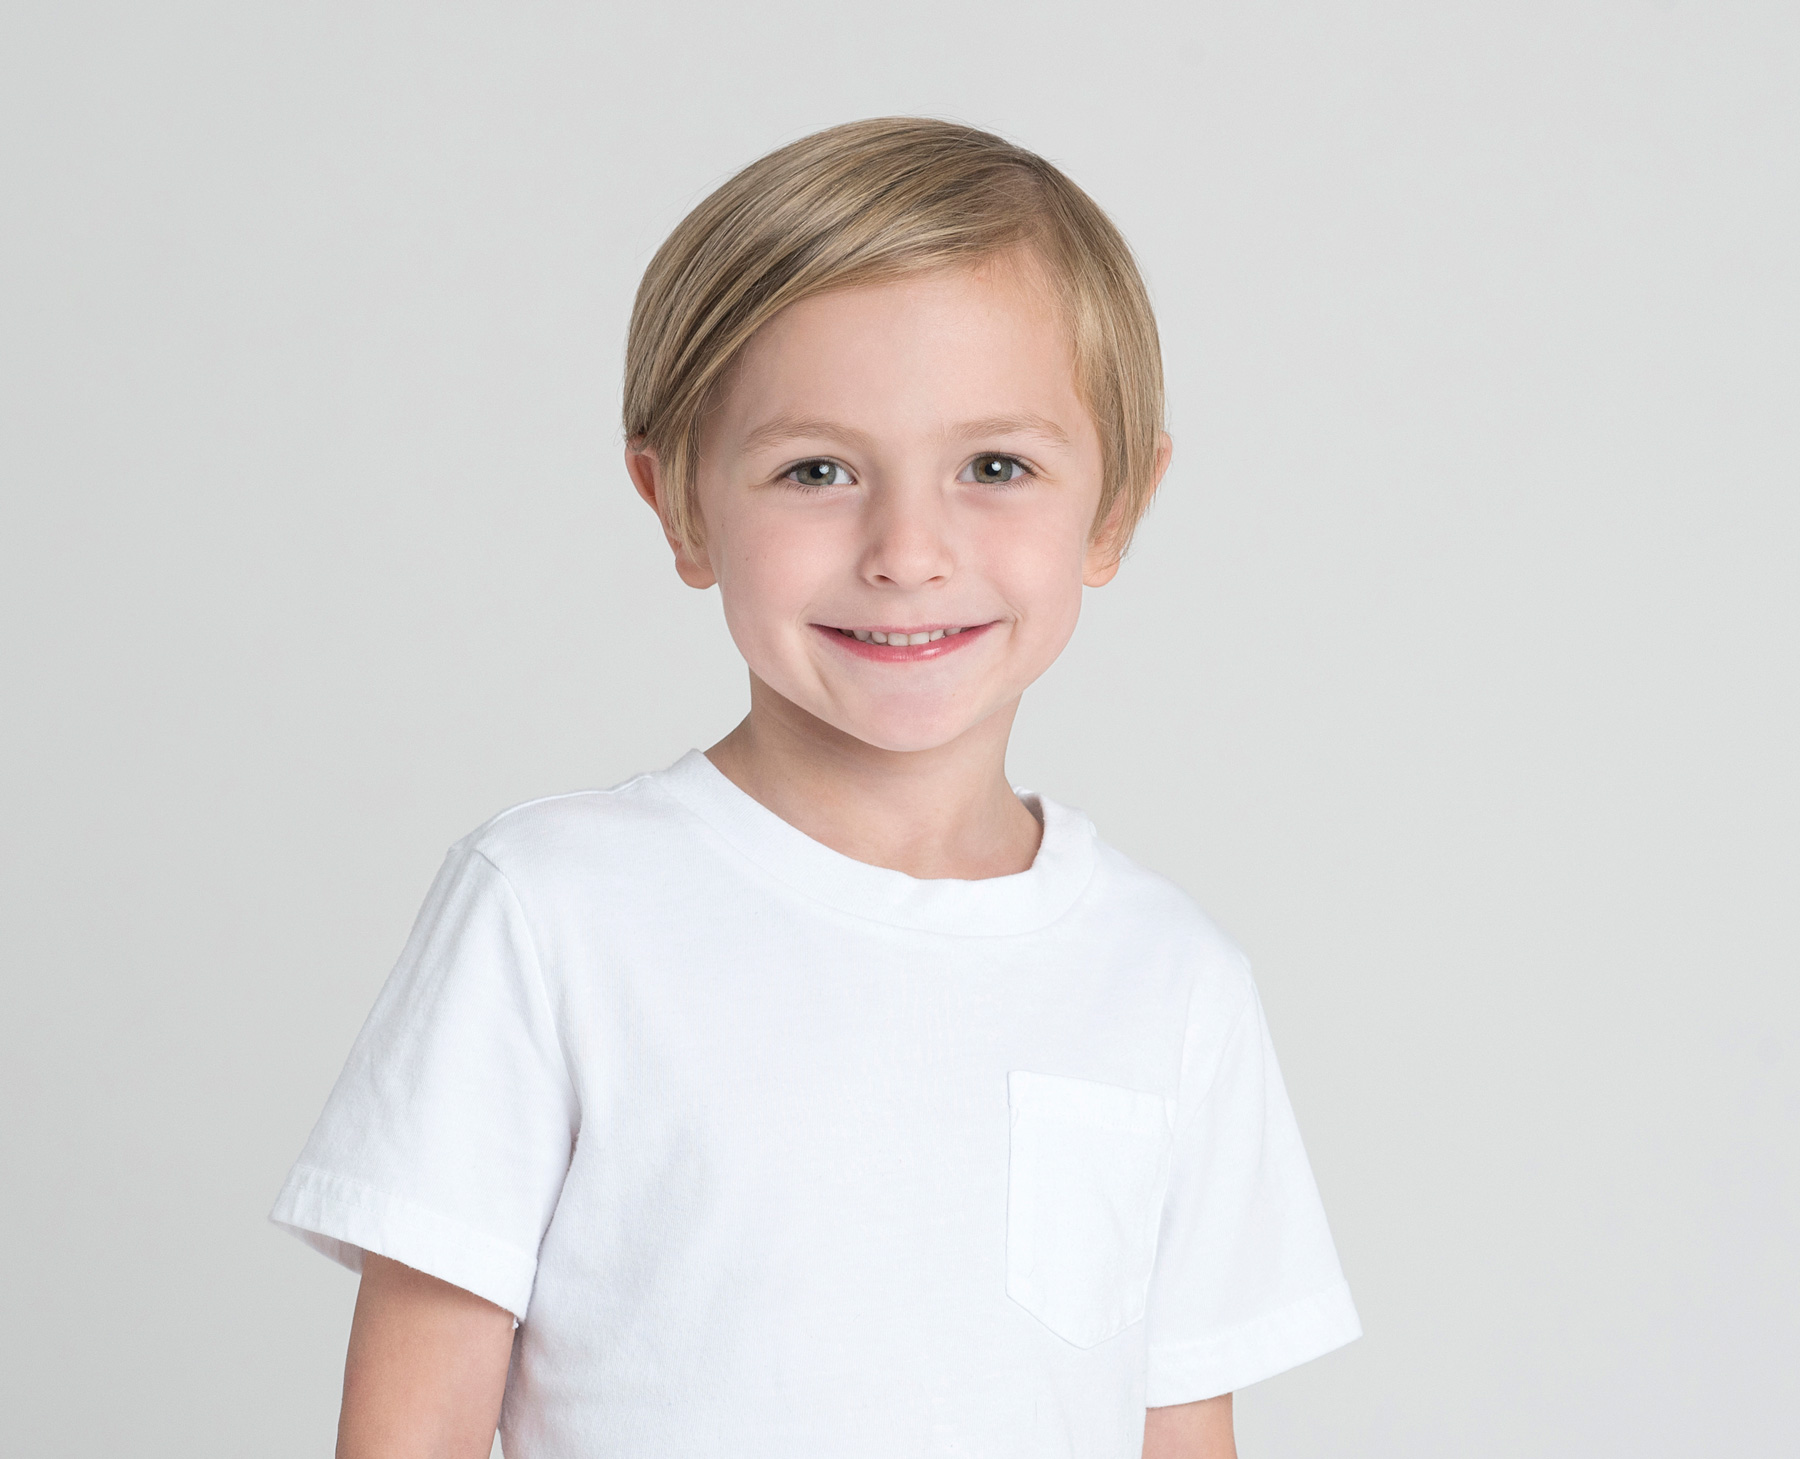 studio portrait of a boy wearing a white shirt